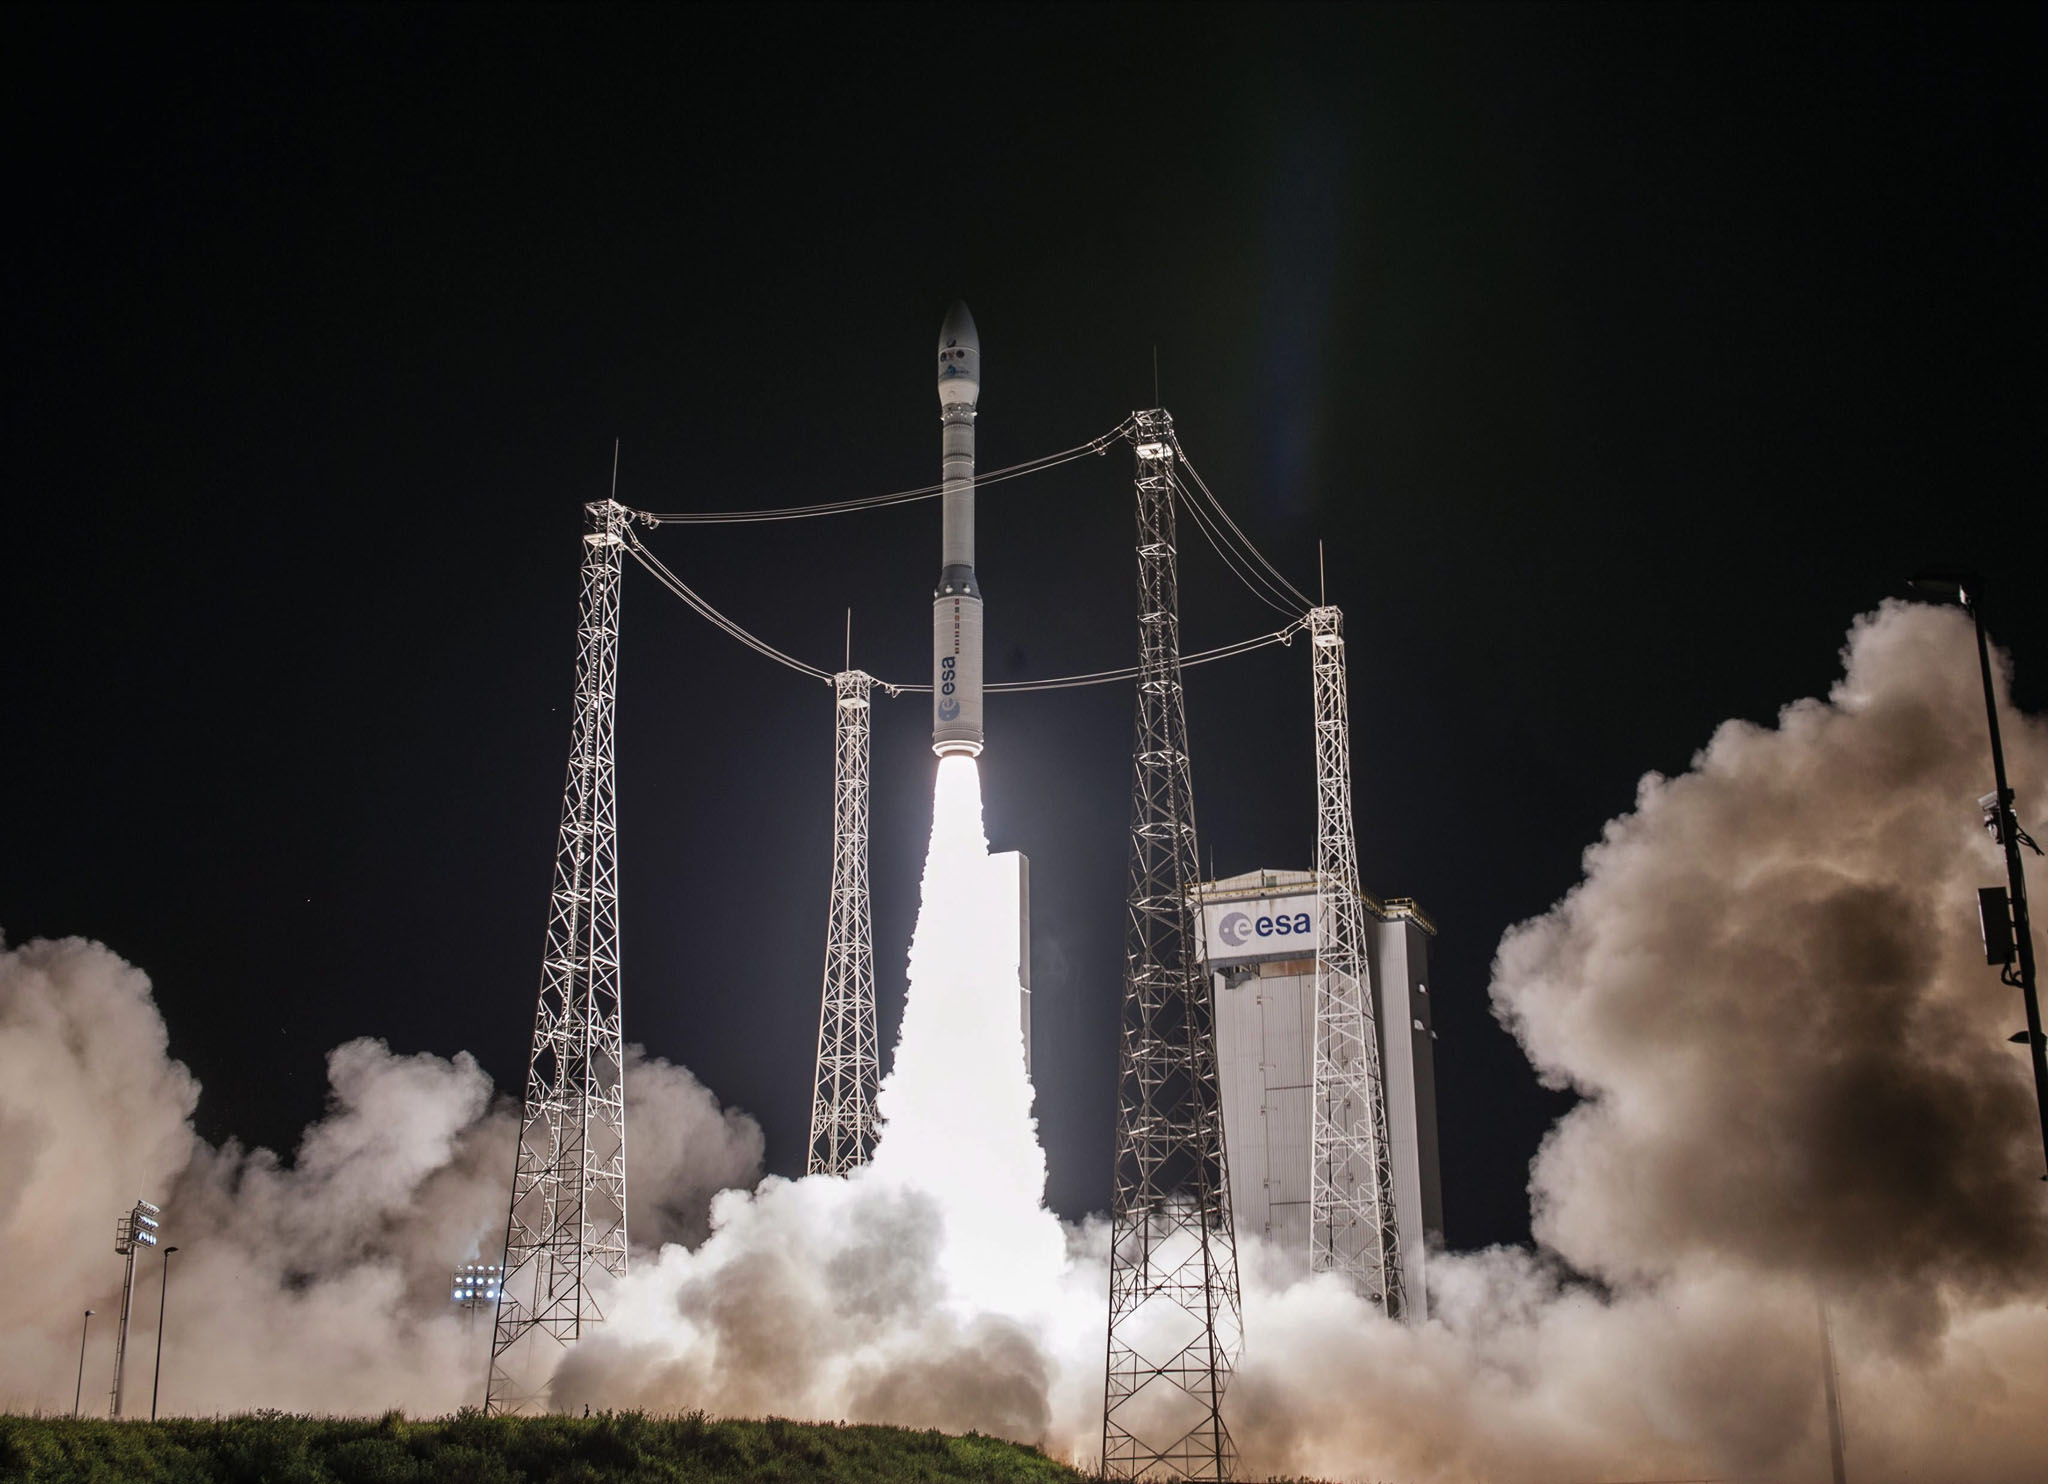 lift-off of Arianaspace's Vega rocket from Europe's Spaceport in Kourou, French Guiana